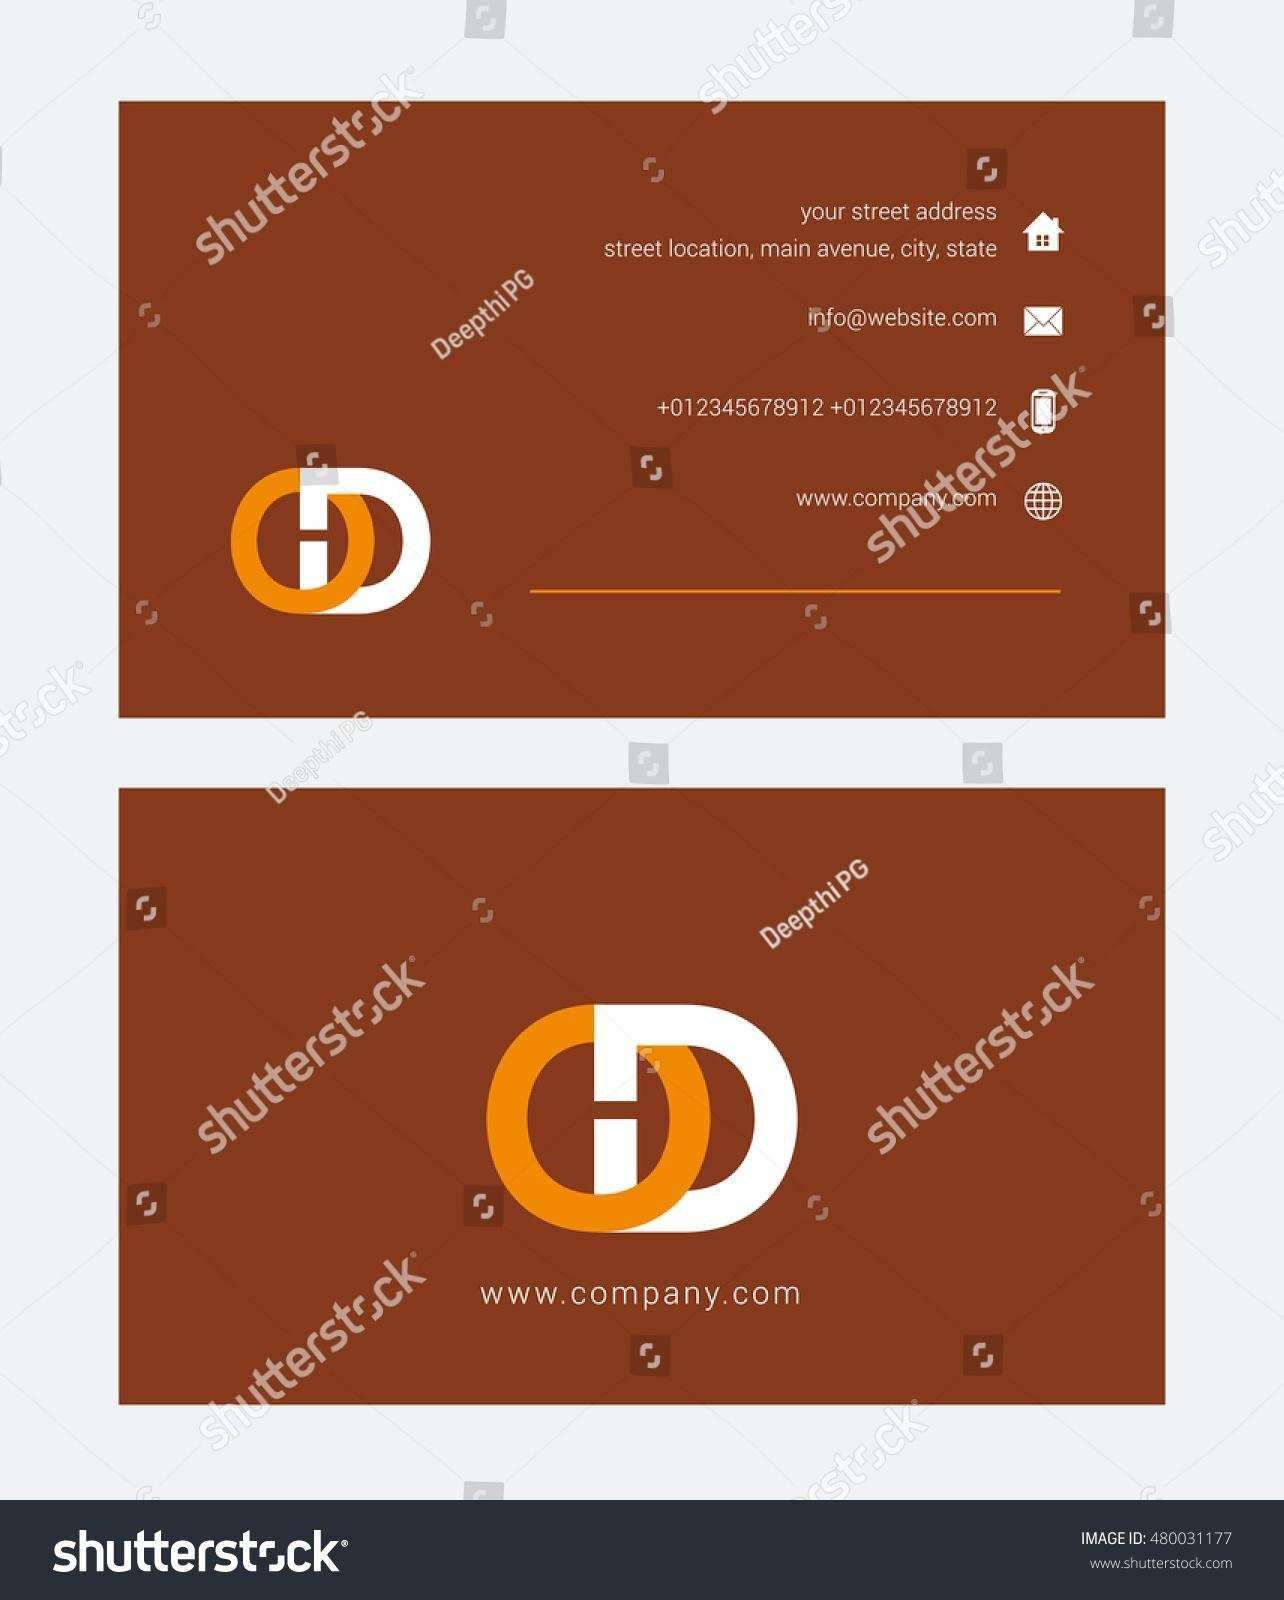 Business Card Free Template Business Card Powerpoint Templates Free Unique Card Templat Free Business Card Templates Free Business Cards Business Card Template